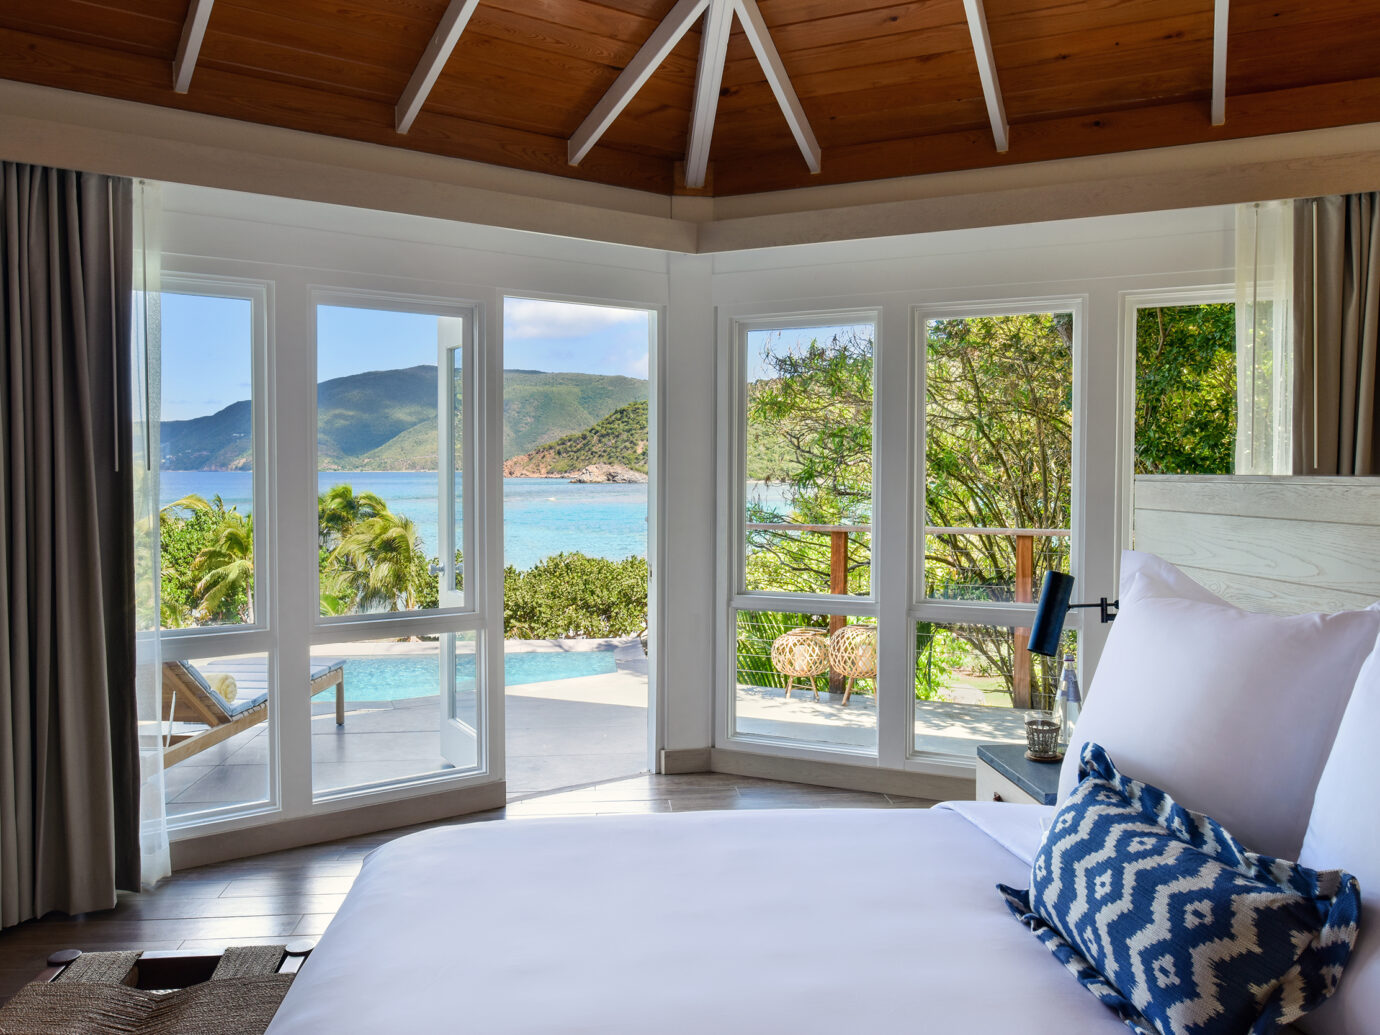 Bedroom at Rosewood Little Dix Bay